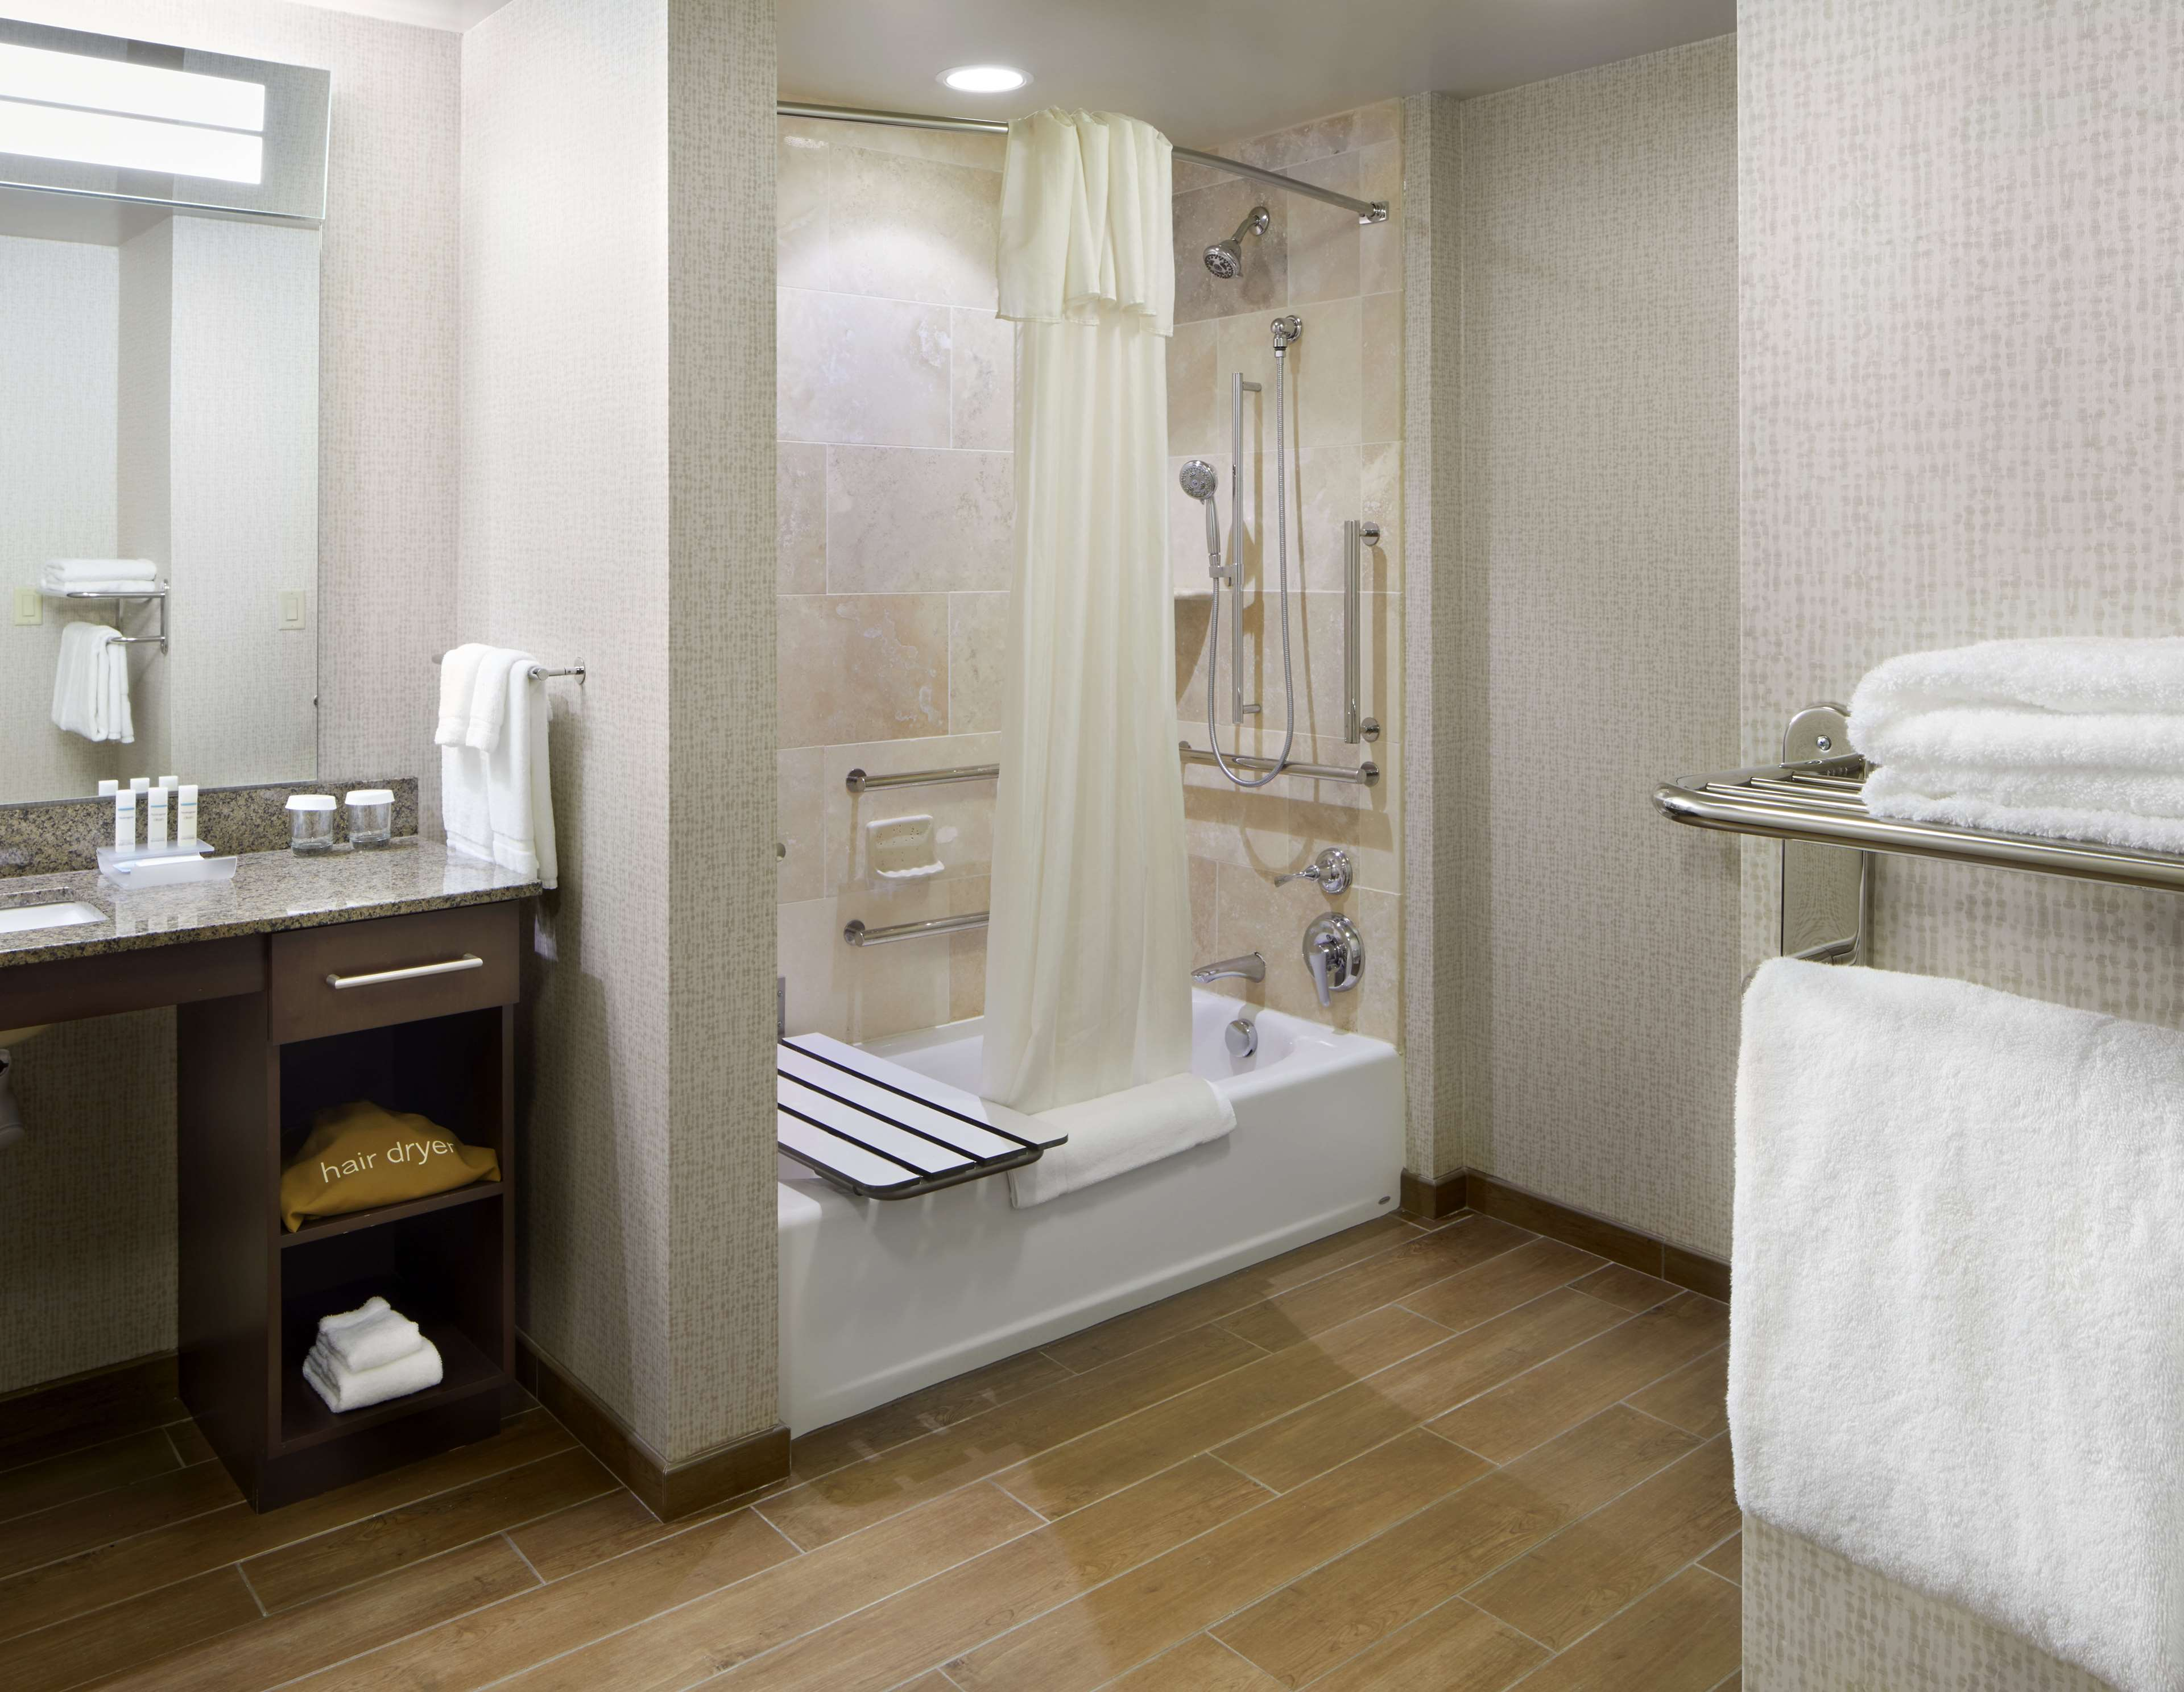 Homewood Suites by Hilton Pittsburgh Airport Robinson Mall Area PA image 16